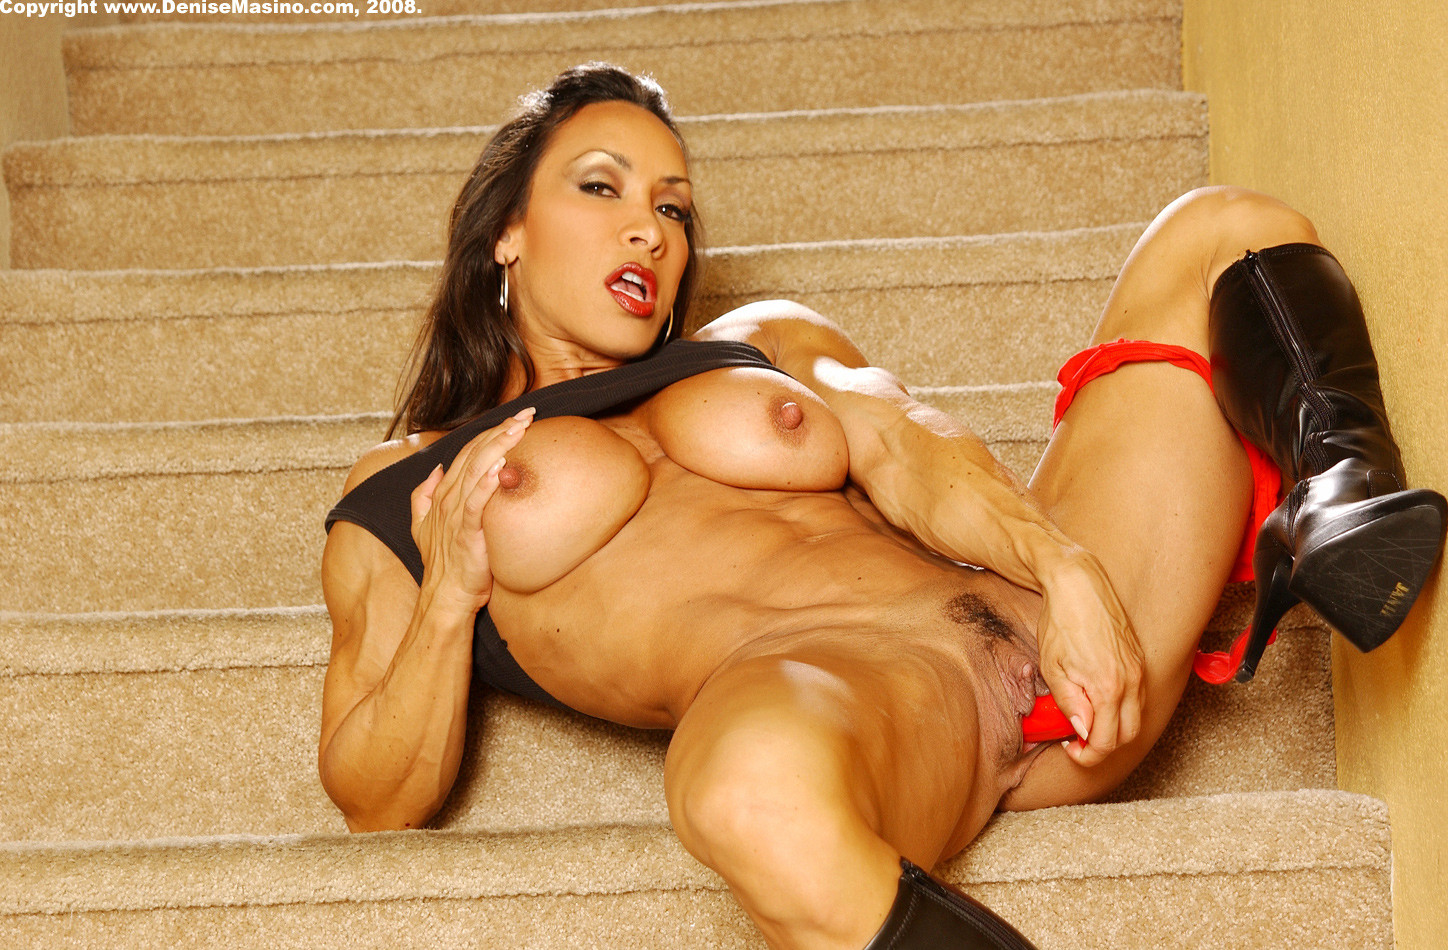 Denise masino getting fucked